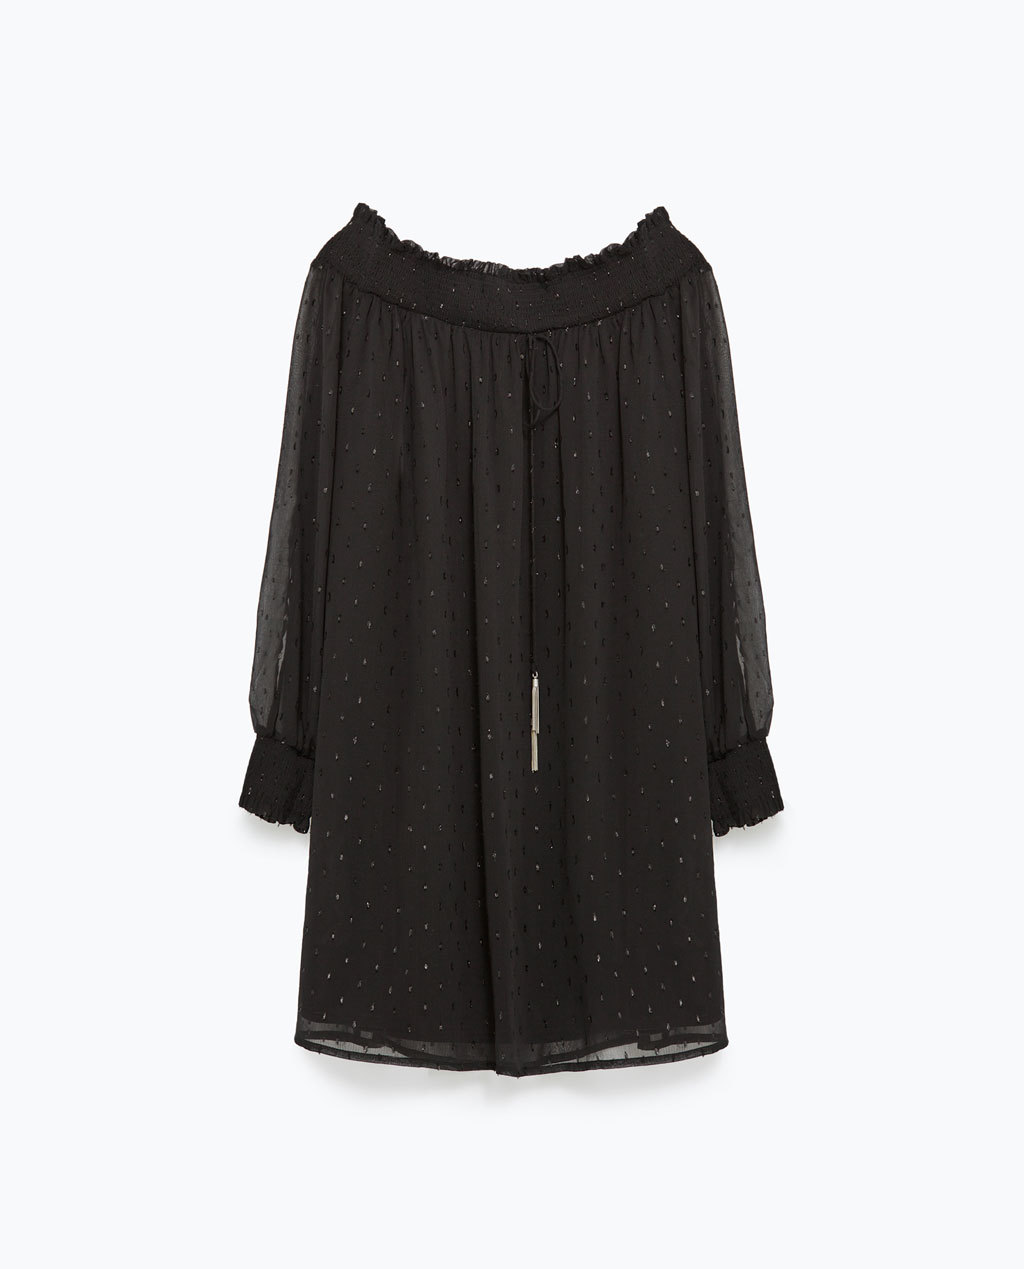 Plumetis Dress - style: smock; length: mid thigh; neckline: off the shoulder; fit: loose; sleeve style: balloon; pattern: polka dot; secondary colour: gold; predominant colour: black; occasions: evening; fibres: polyester/polyamide - 100%; sleeve length: long sleeve; texture group: sheer fabrics/chiffon/organza etc.; pattern type: fabric; pattern size: light/subtle; embellishment: glitter; season: a/w 2015